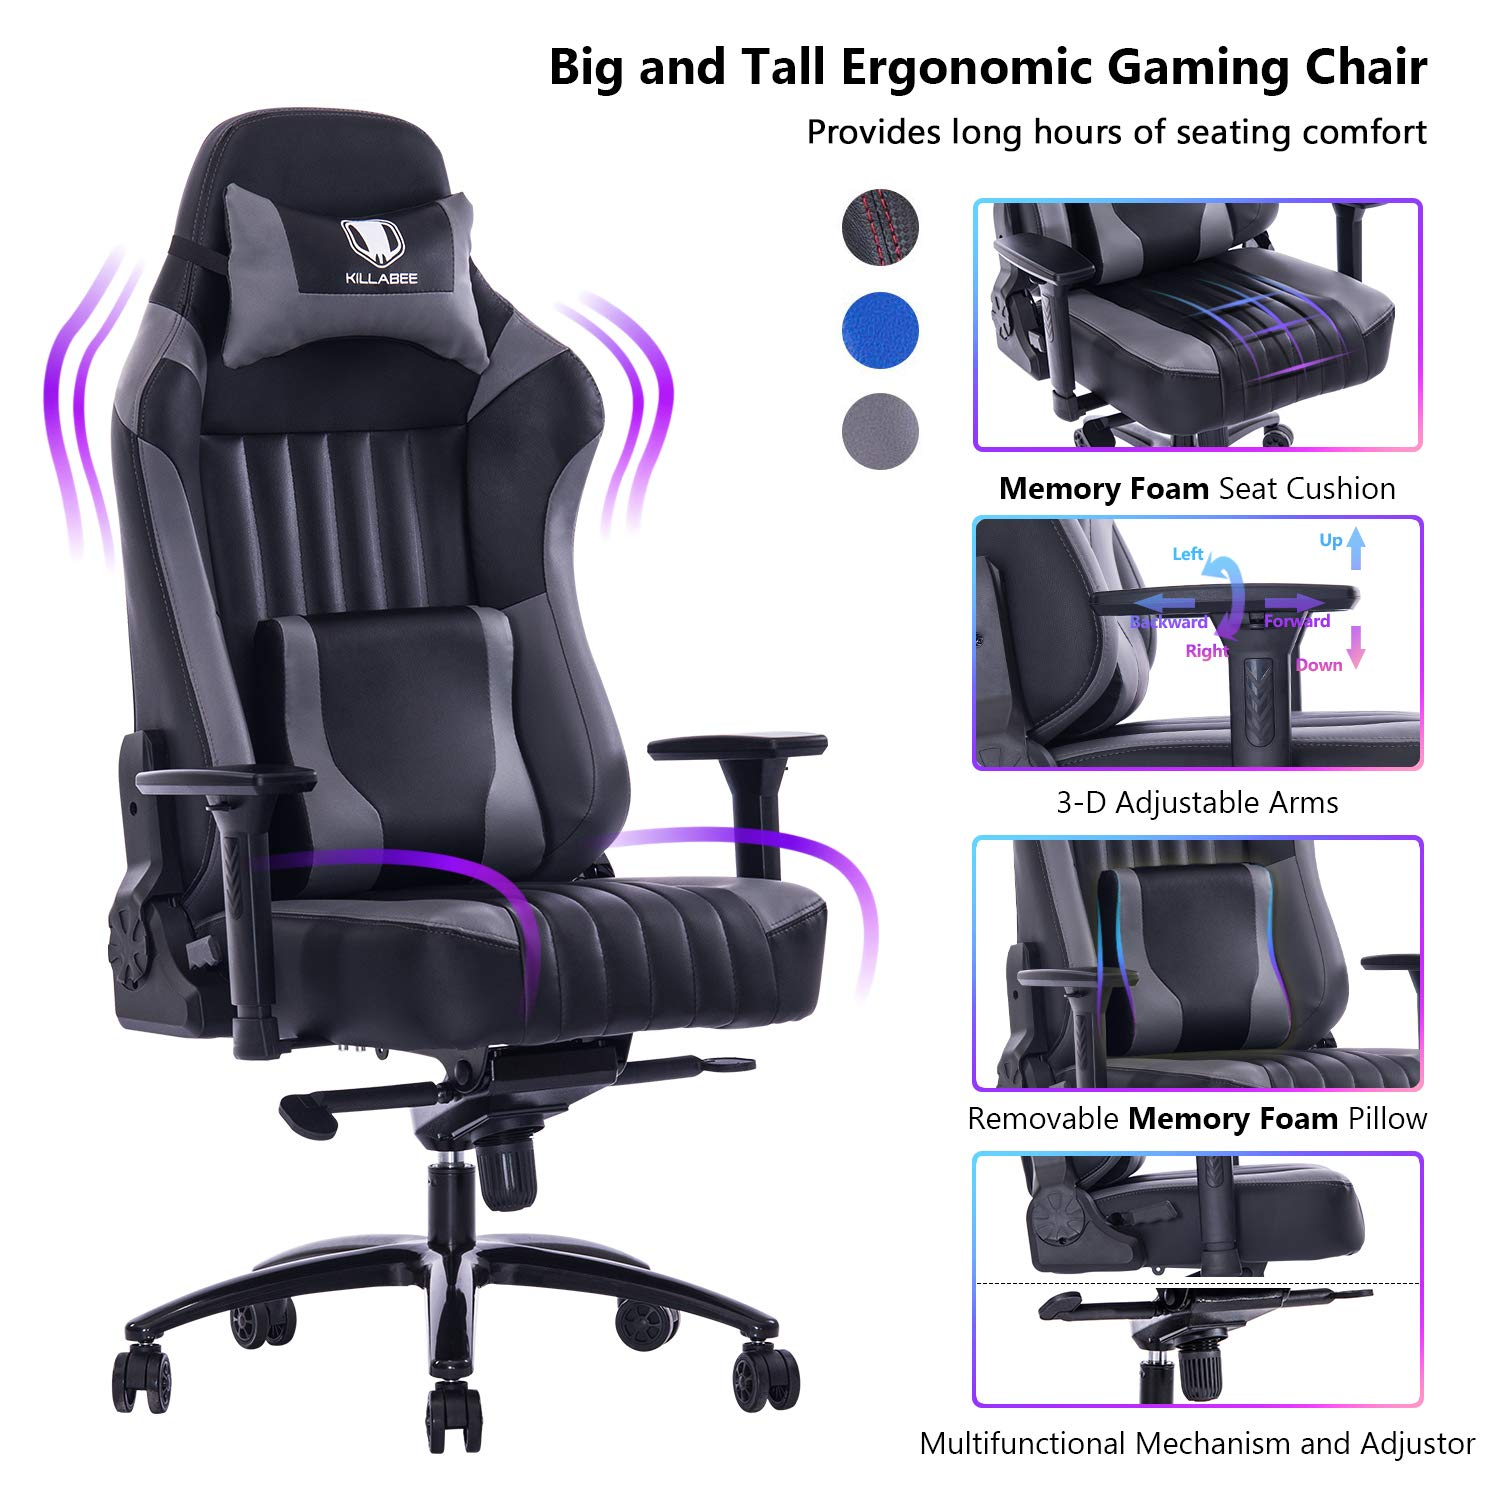 VON RACER Big and Tall 400lb Memory Foam Gaming Chair-Adjustable Tilt, Angle and 3D Arms Ergonomic High-Back Leather Racing Executive Computer Desk Office Metal Base (Gray) by VON RACER